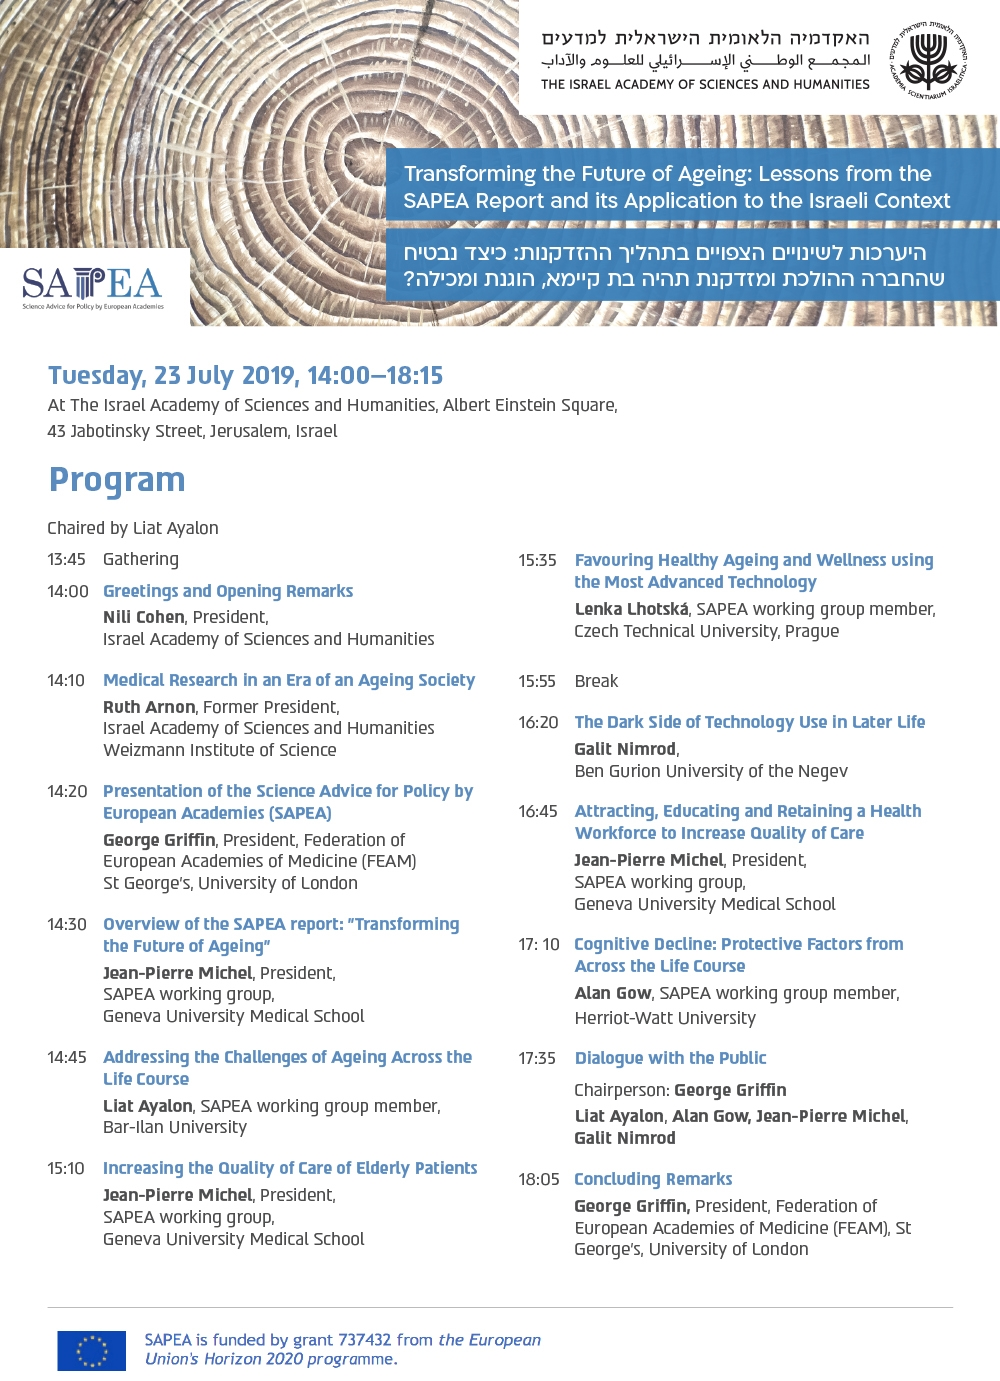 Transforming the Future of Ageing: Lessons from the SAPEA Report and it's Application to the Israeli Context